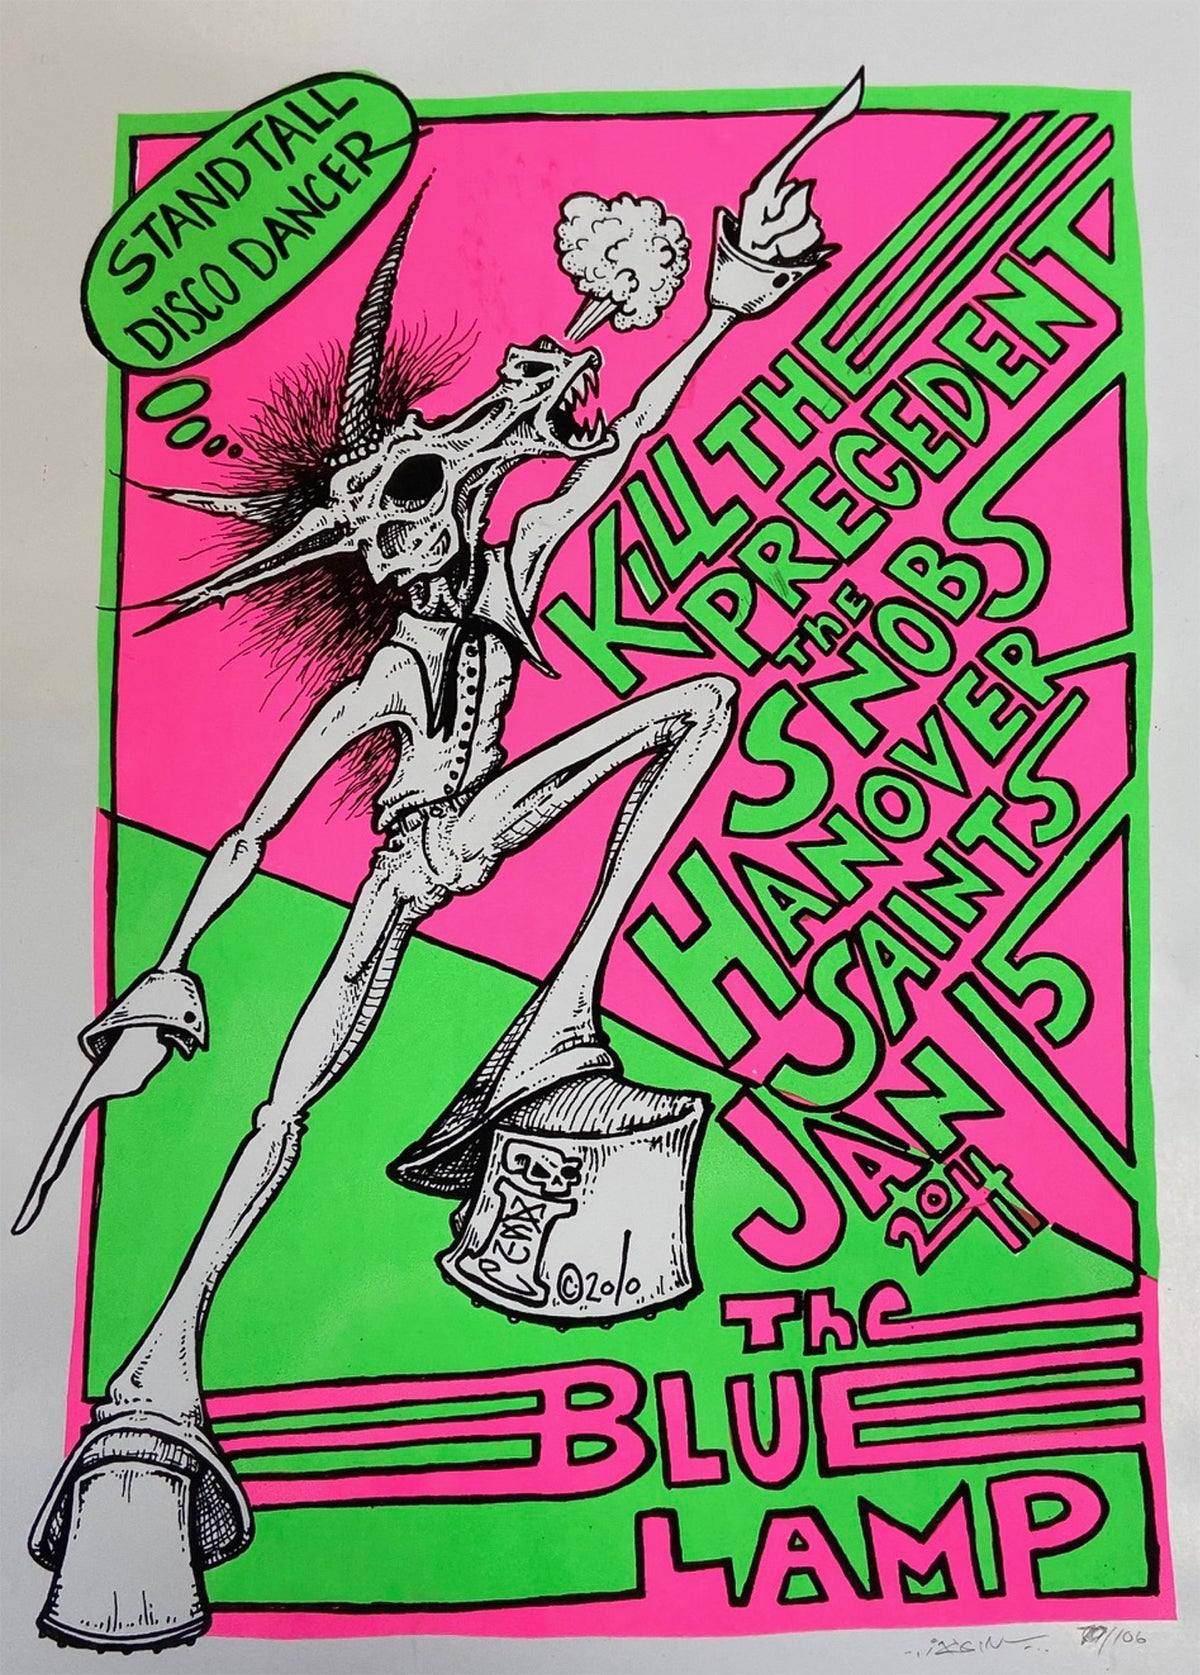 Image of Kill the Precedent, The Snobs, Hanover Saints Poster